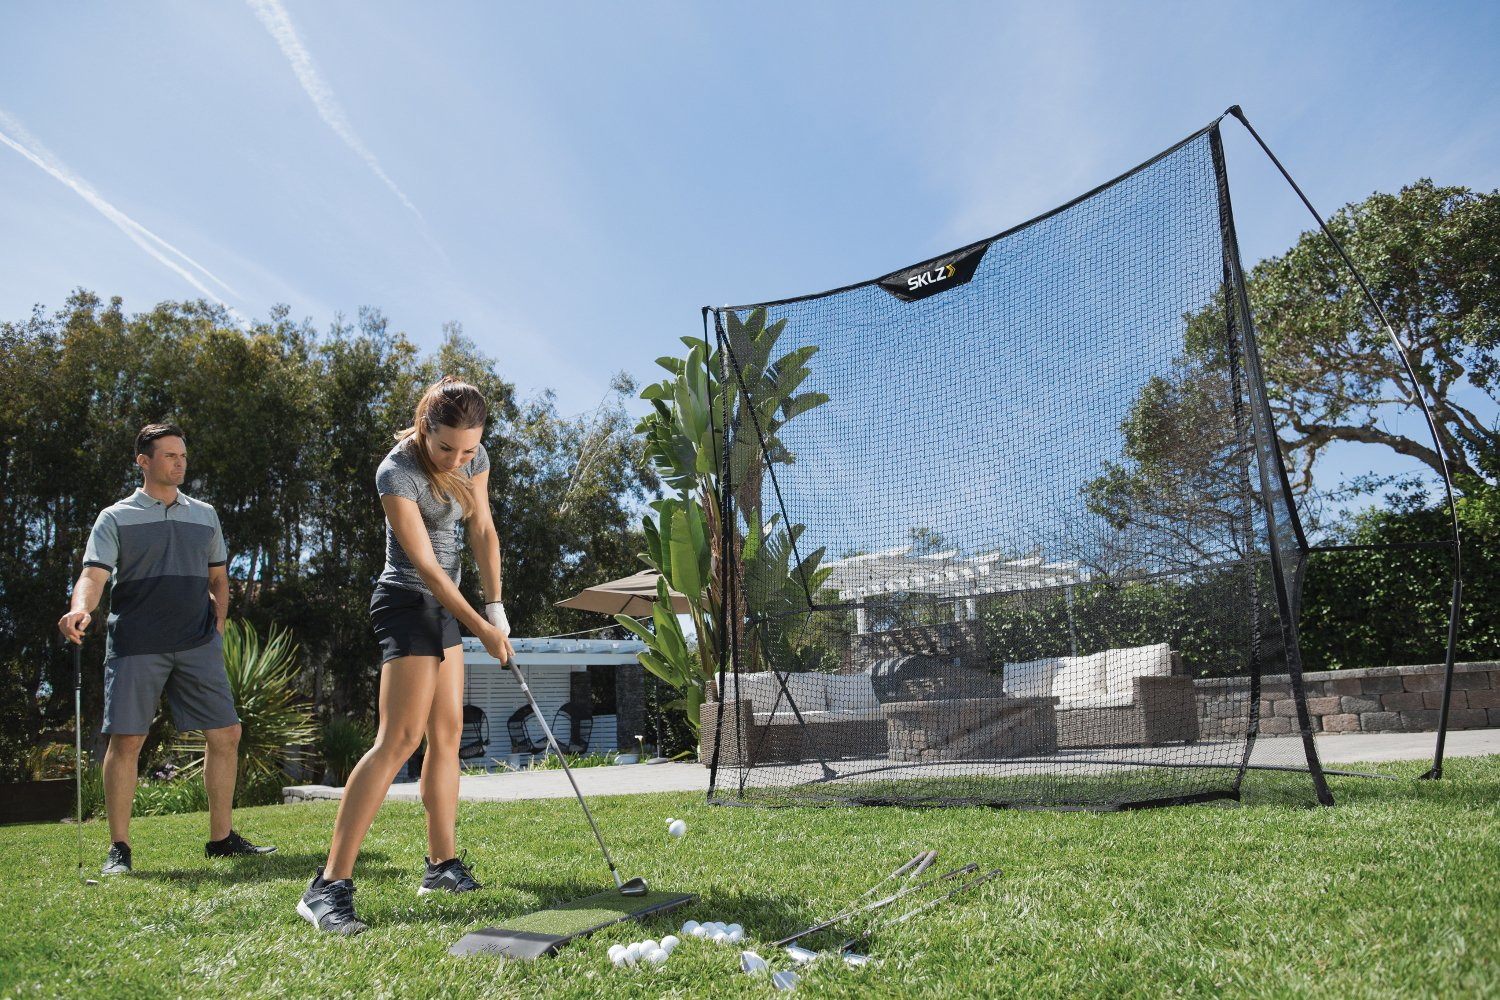 SKLZ Dual Net - 8.5' x 8.5' Premium and Durable Golf Training Net. by SKLZ (Image #4)